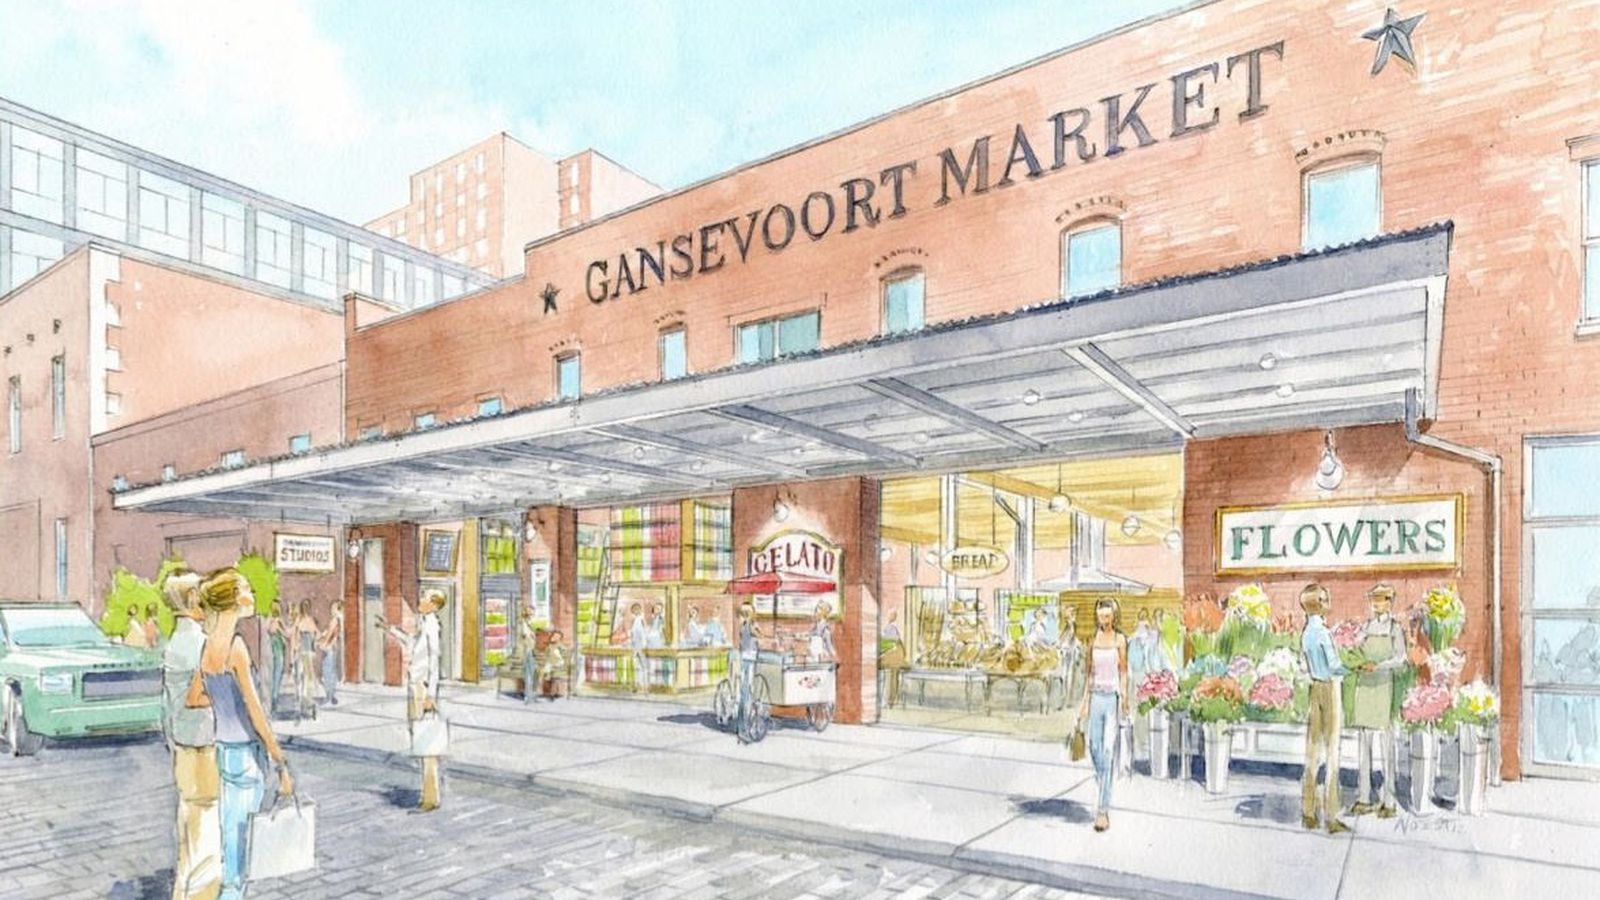 Gansevoort Market Plan gansevoort market didn't quite manage to get off the ground today